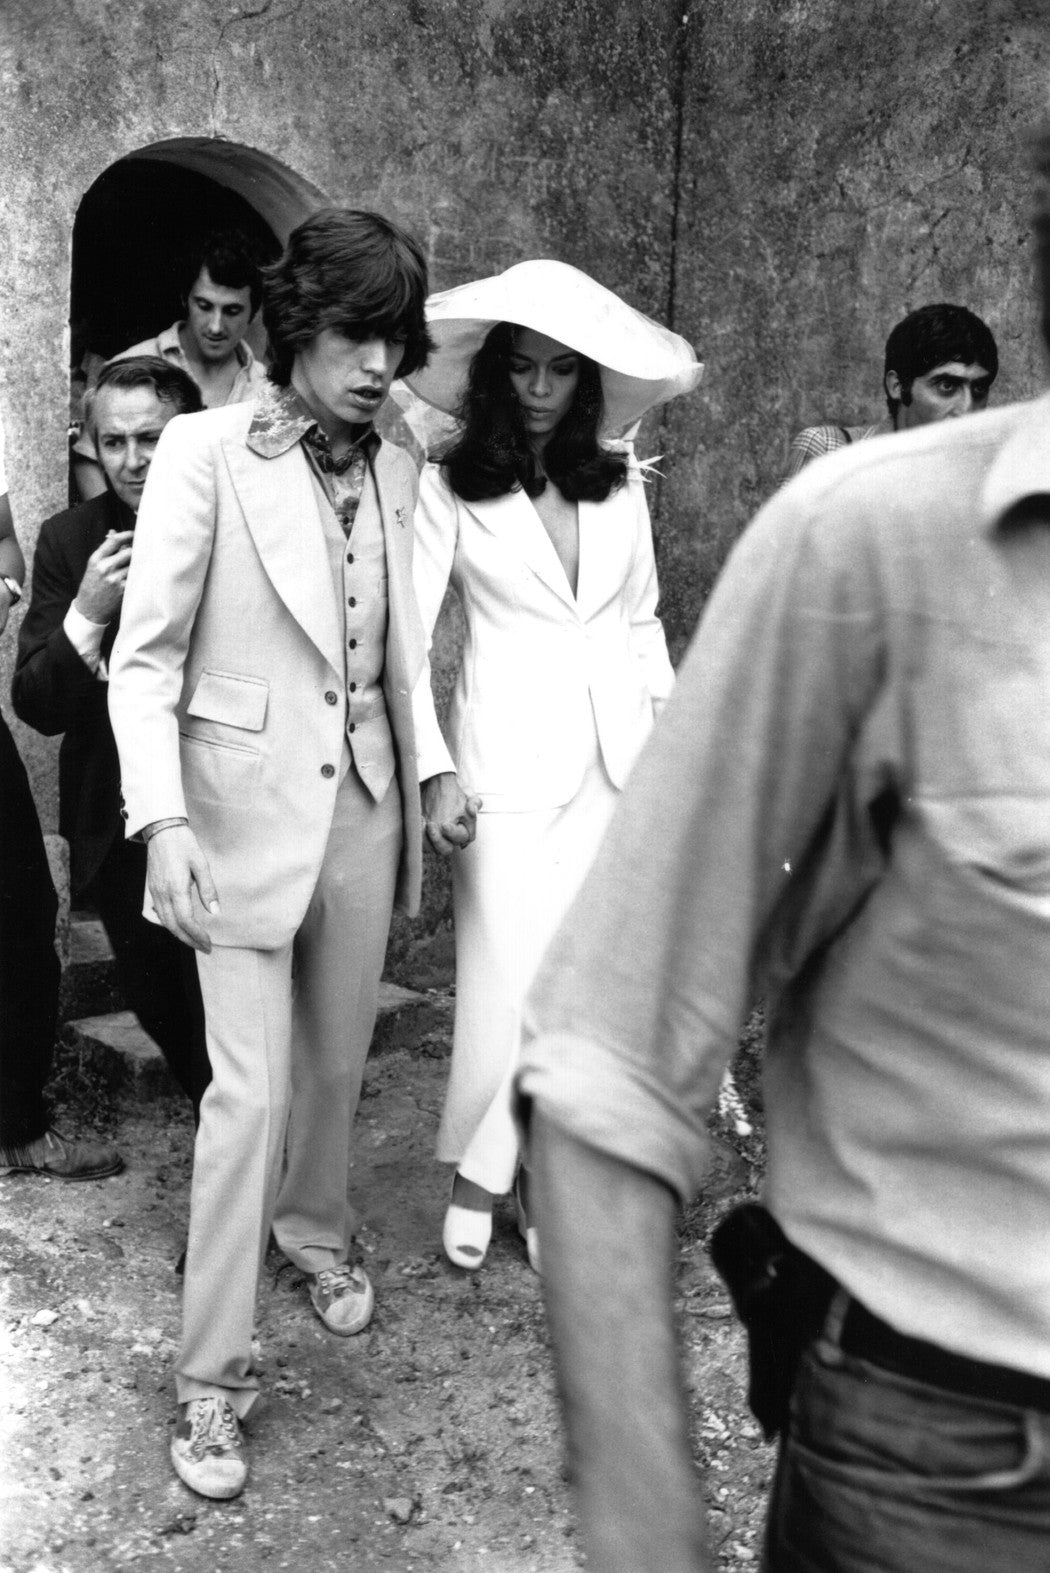 Bianca and Mick Jagger on their wedding day